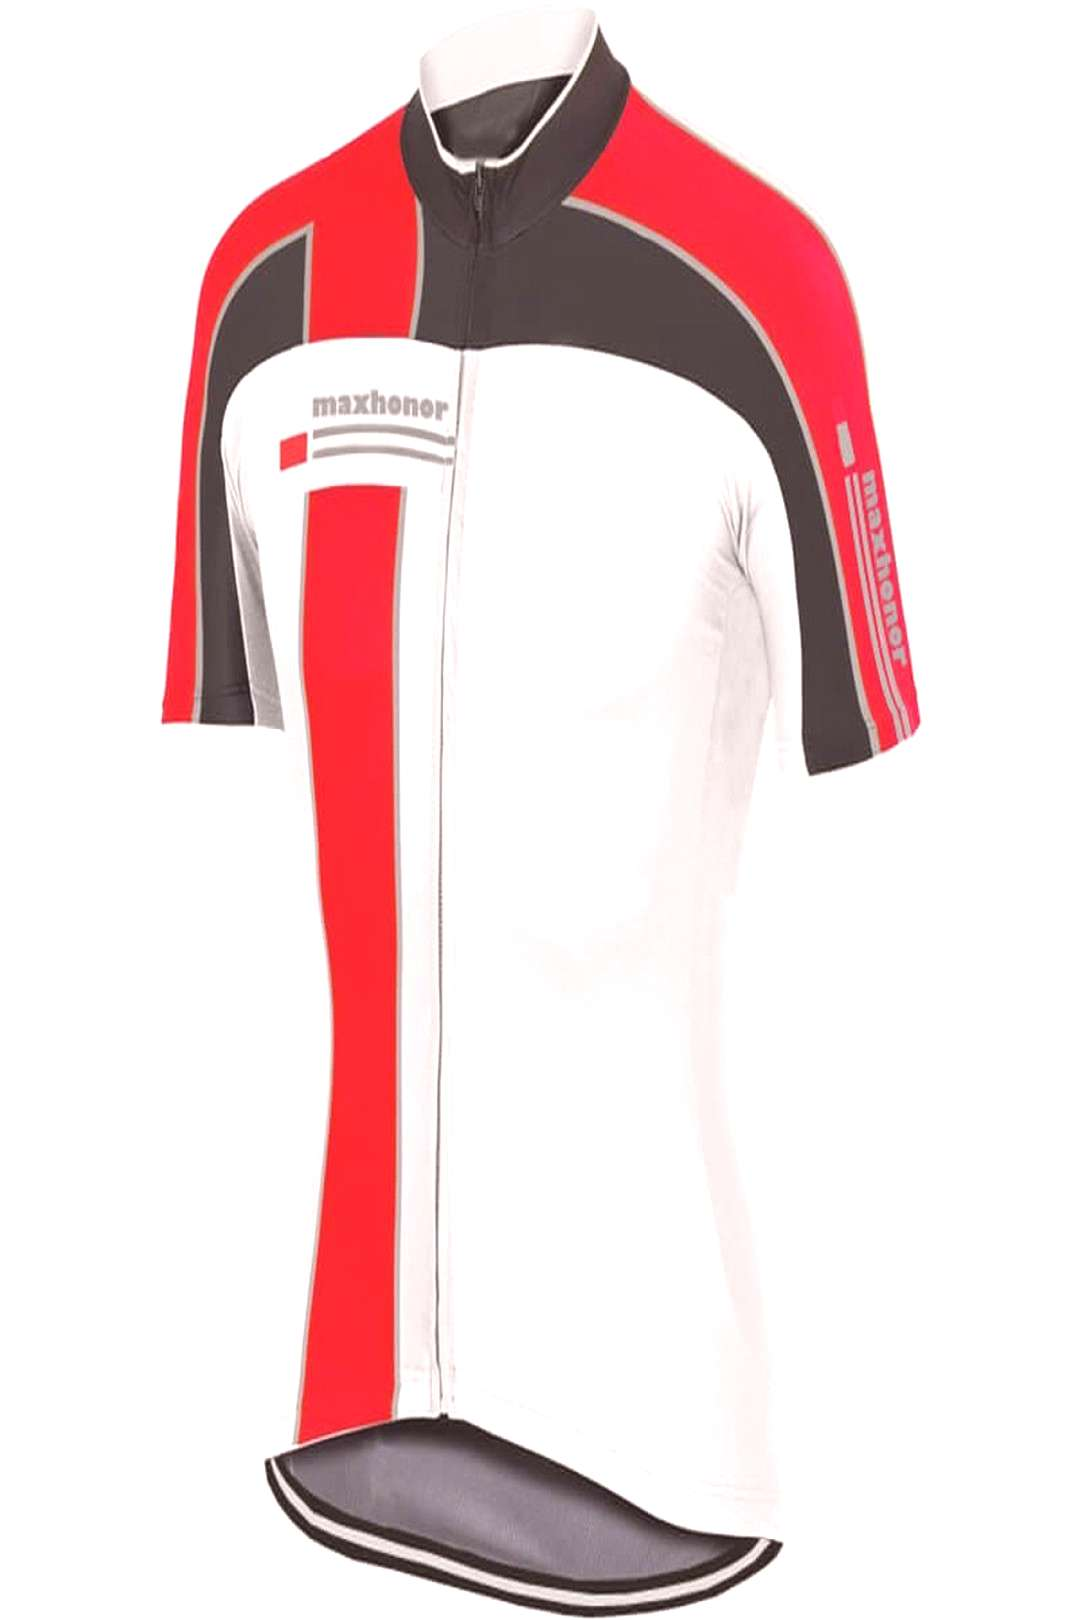 Snowboarding Red Cycling Jersey Custom Cycling Jersey Cycling Jersey Design Ideas Style Blue C